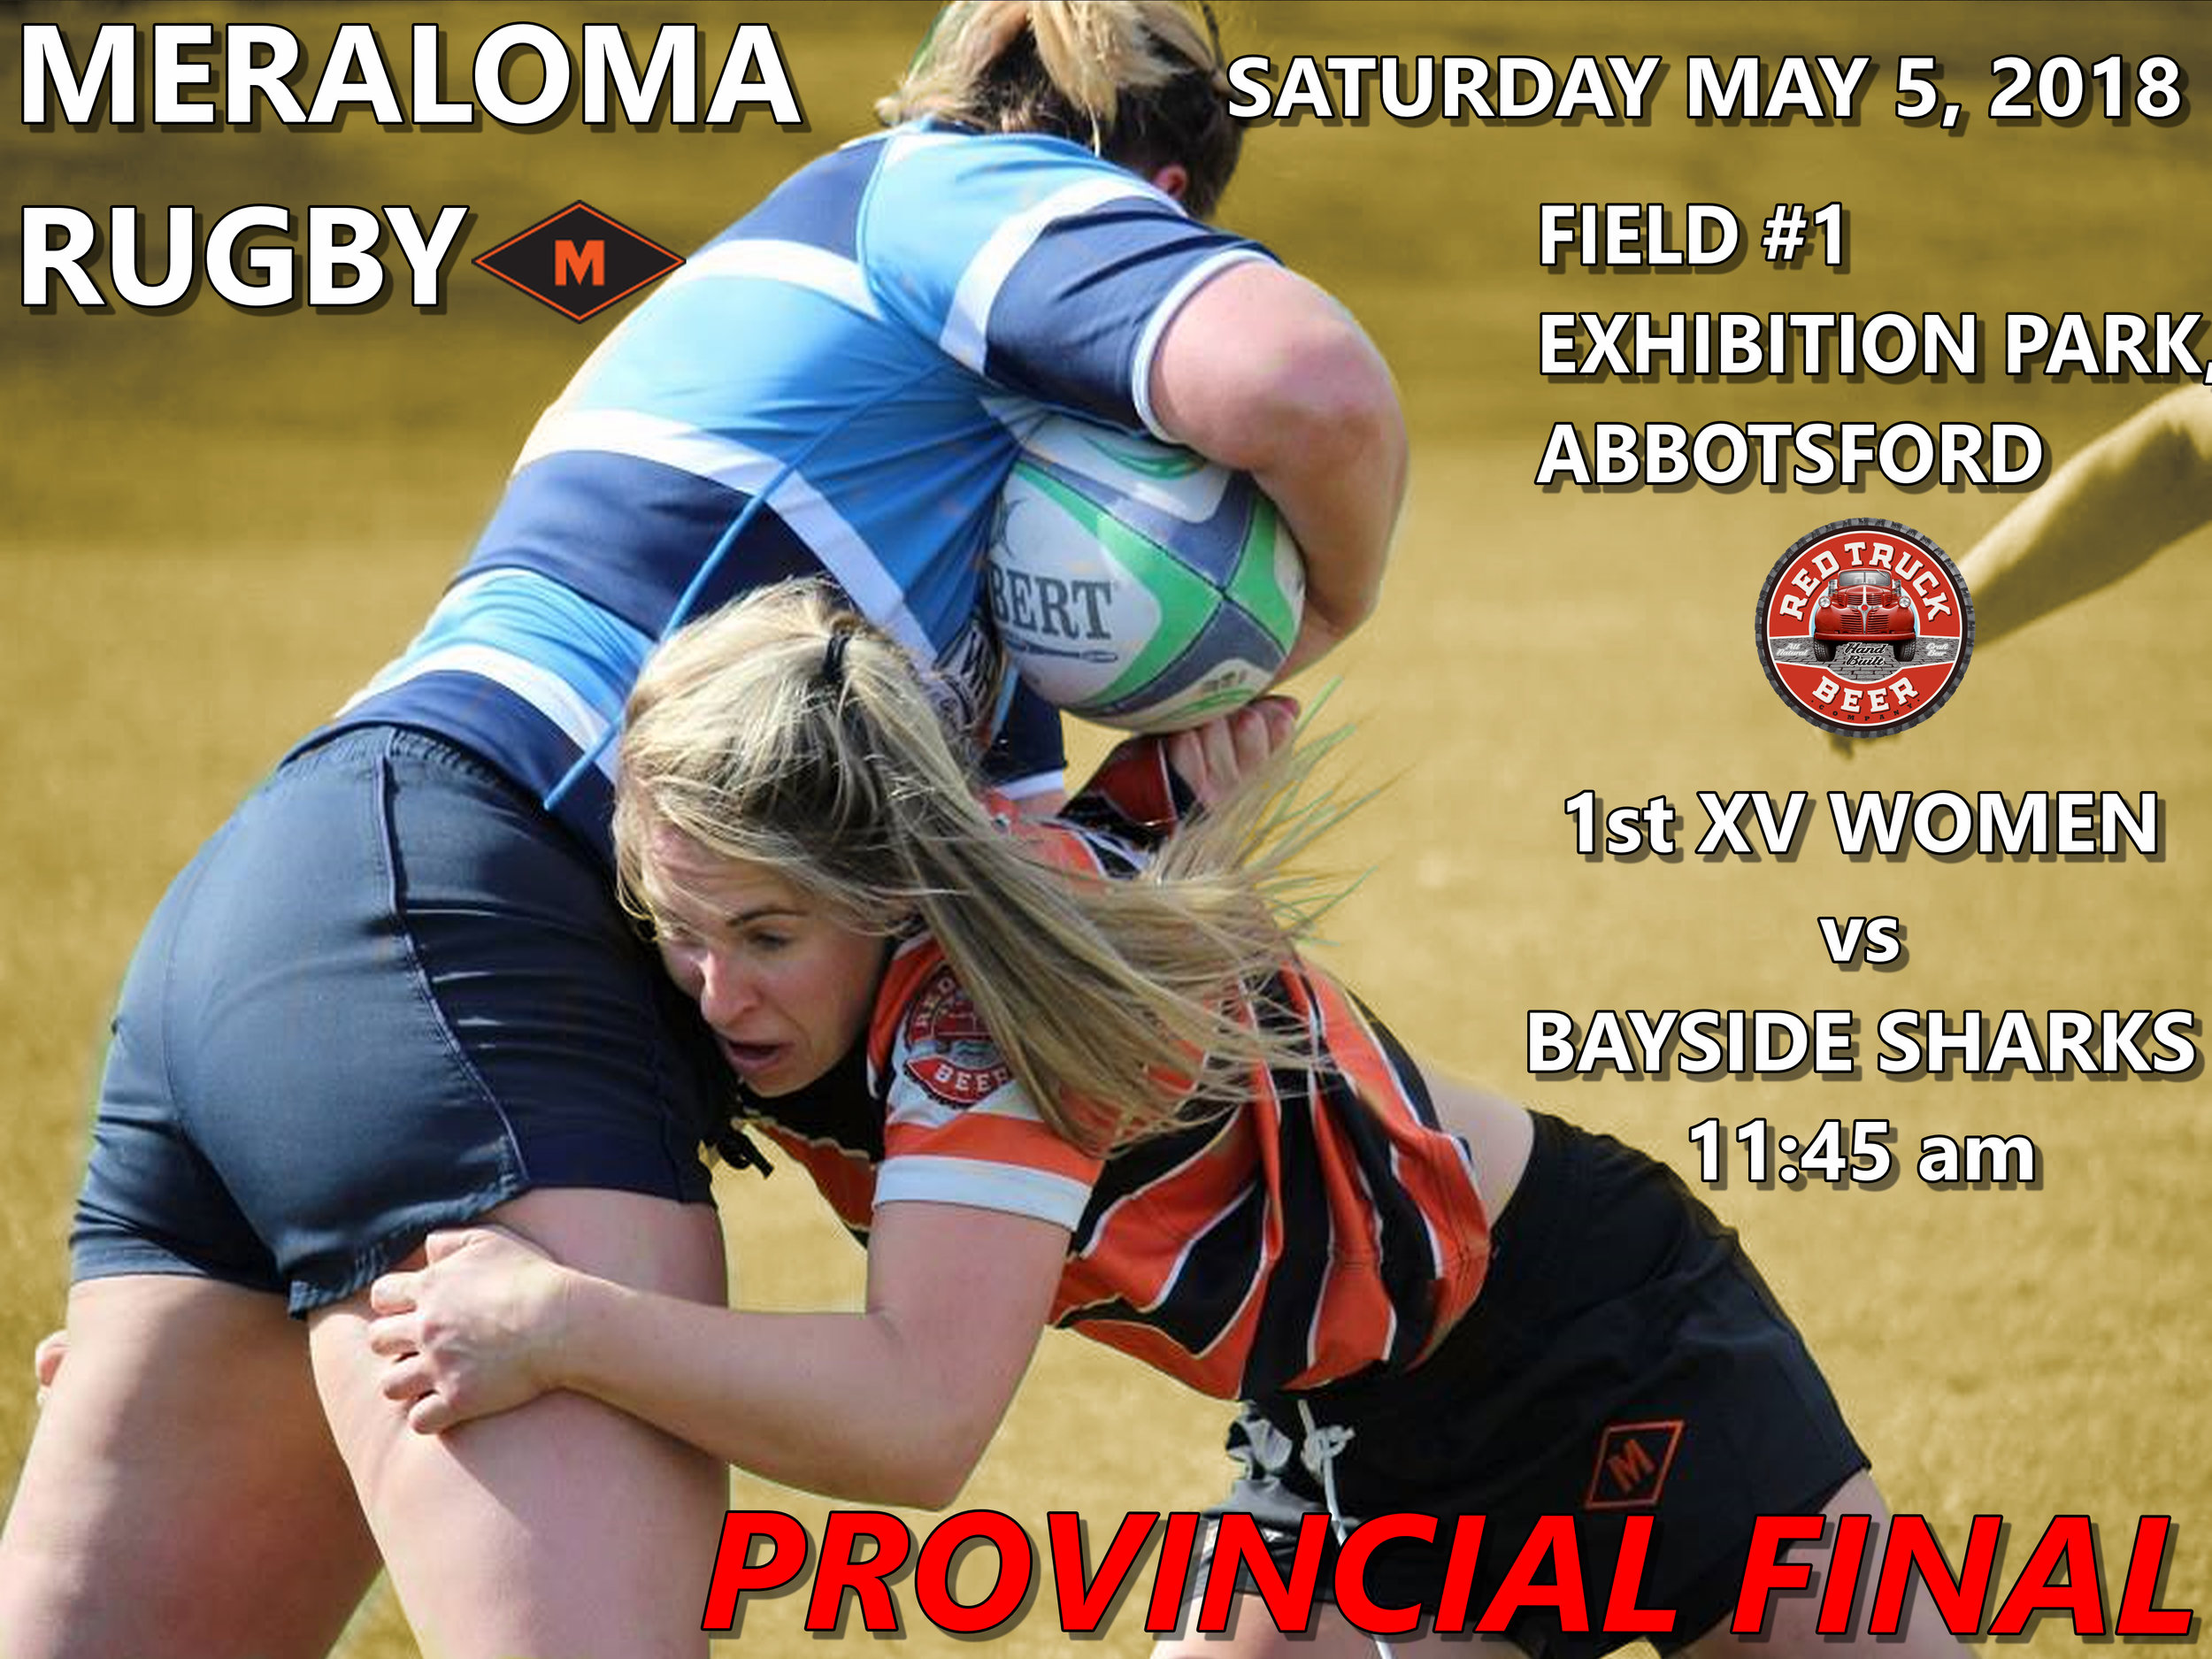 3rd revised game notice 1st XV Women BC Final vs Bayside May 5 2018.jpg